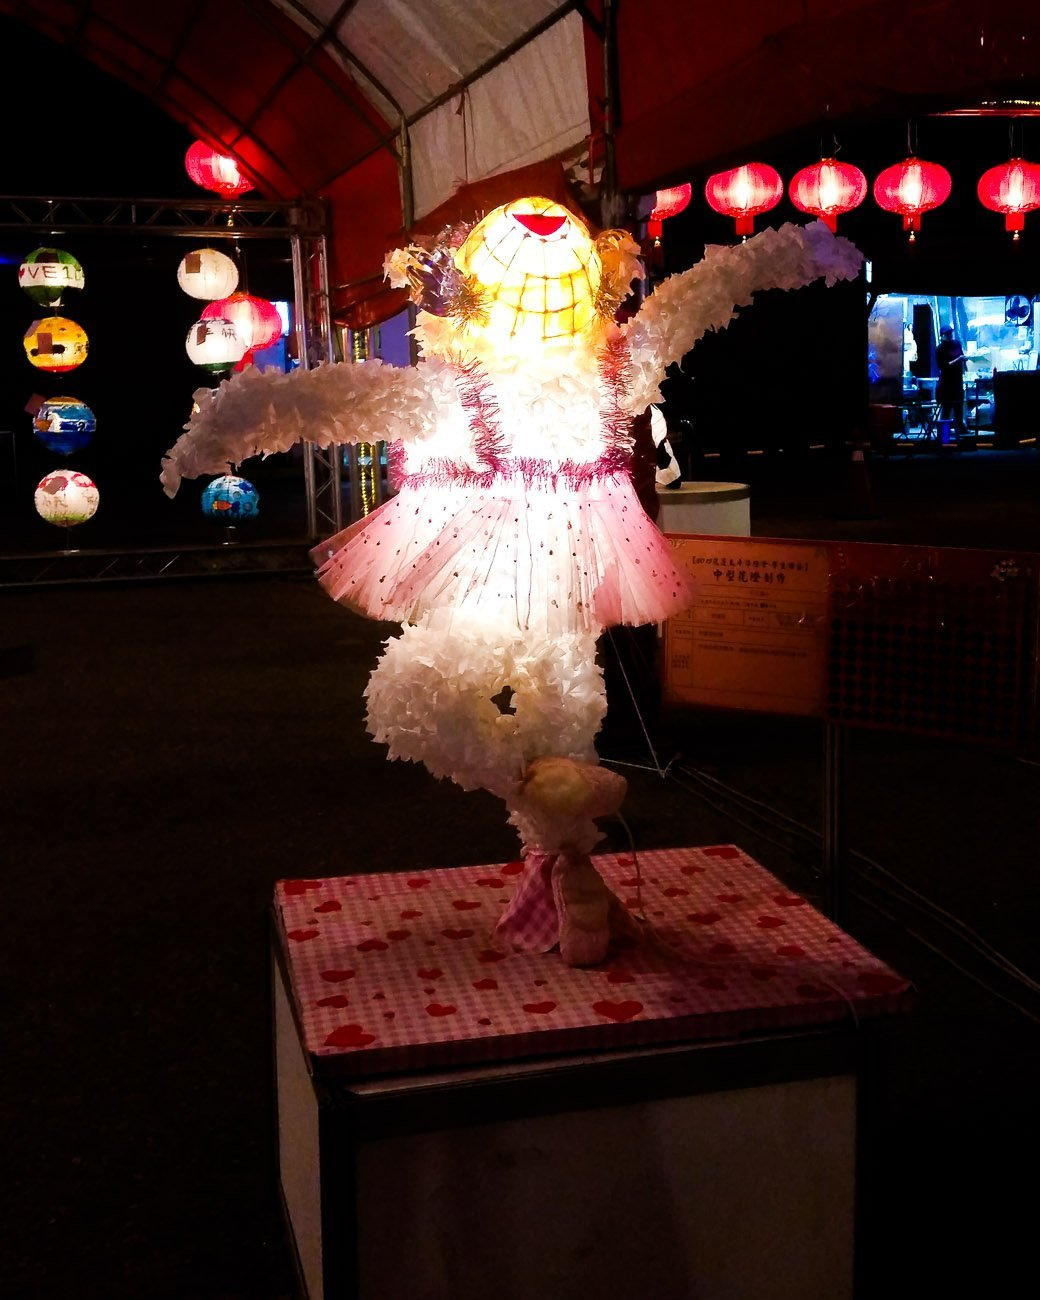 Ballerina lantern at Hualien Light Festival 2015